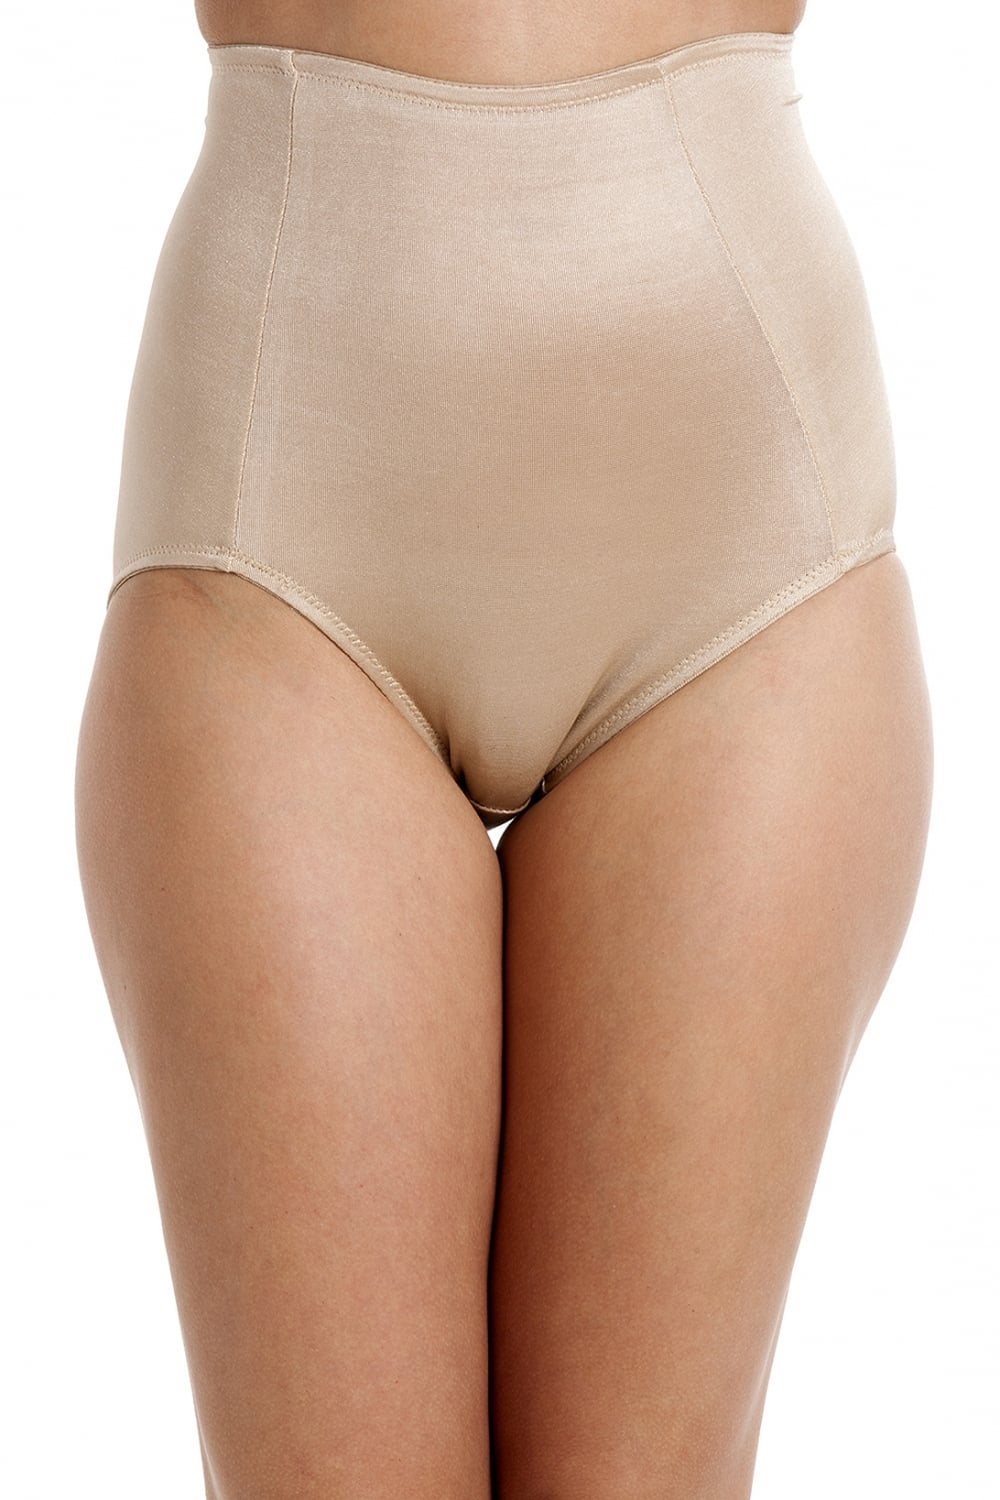 2c719805f34b2 New Womens Beige Camille Shapewear Ladies Full Support Control Briefs Size  10-22